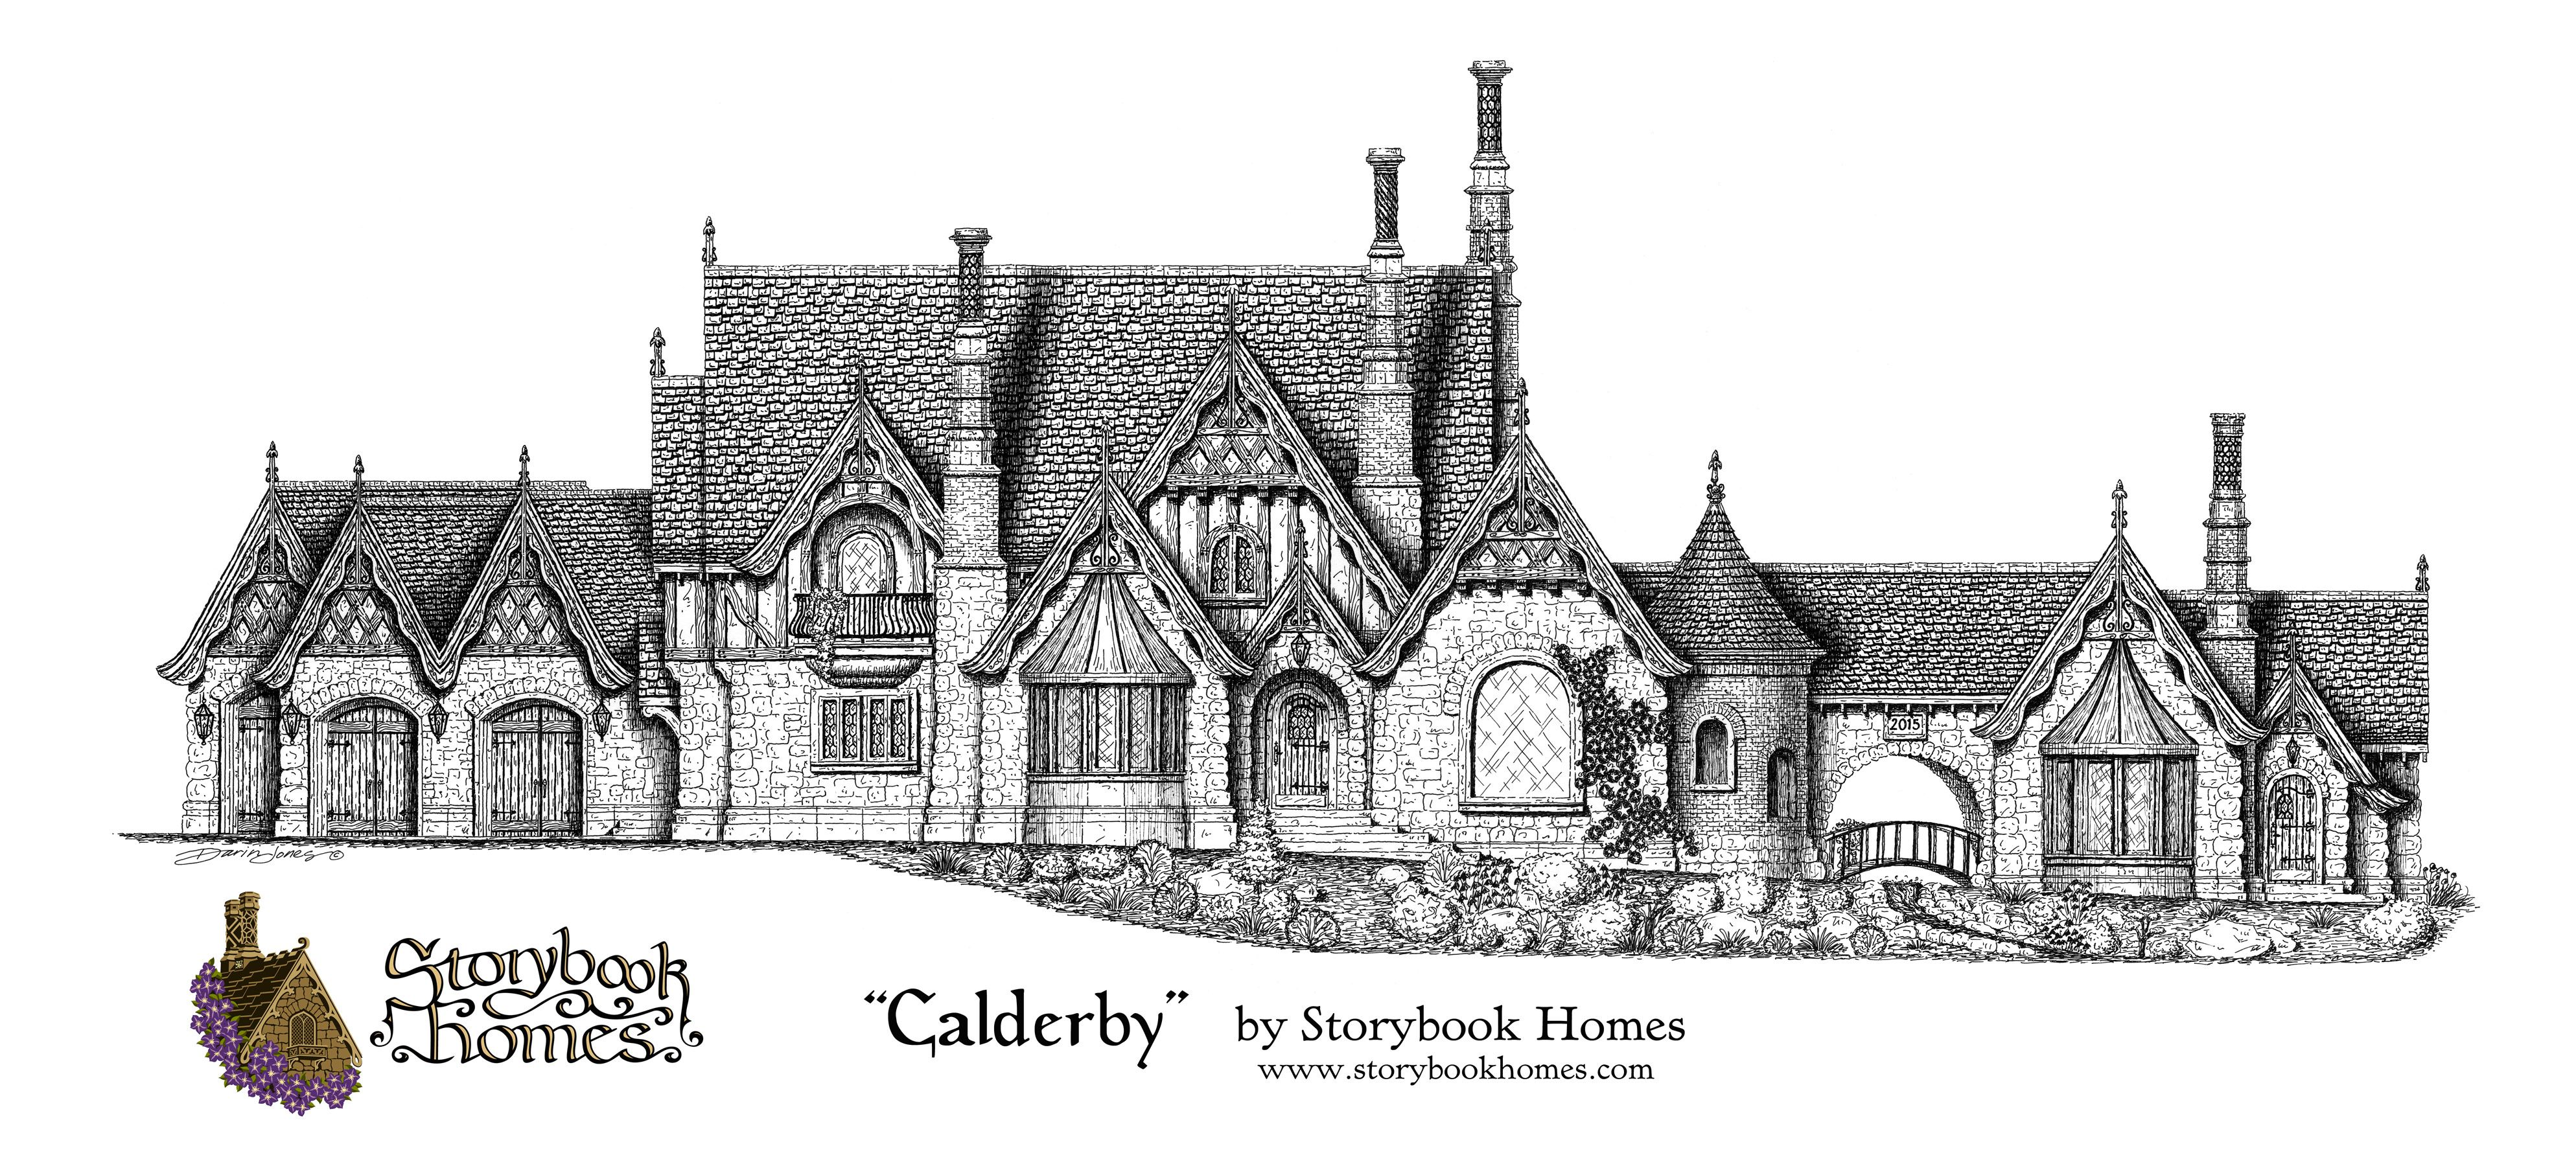 the calderby cottage by samuel hackwell of storybook